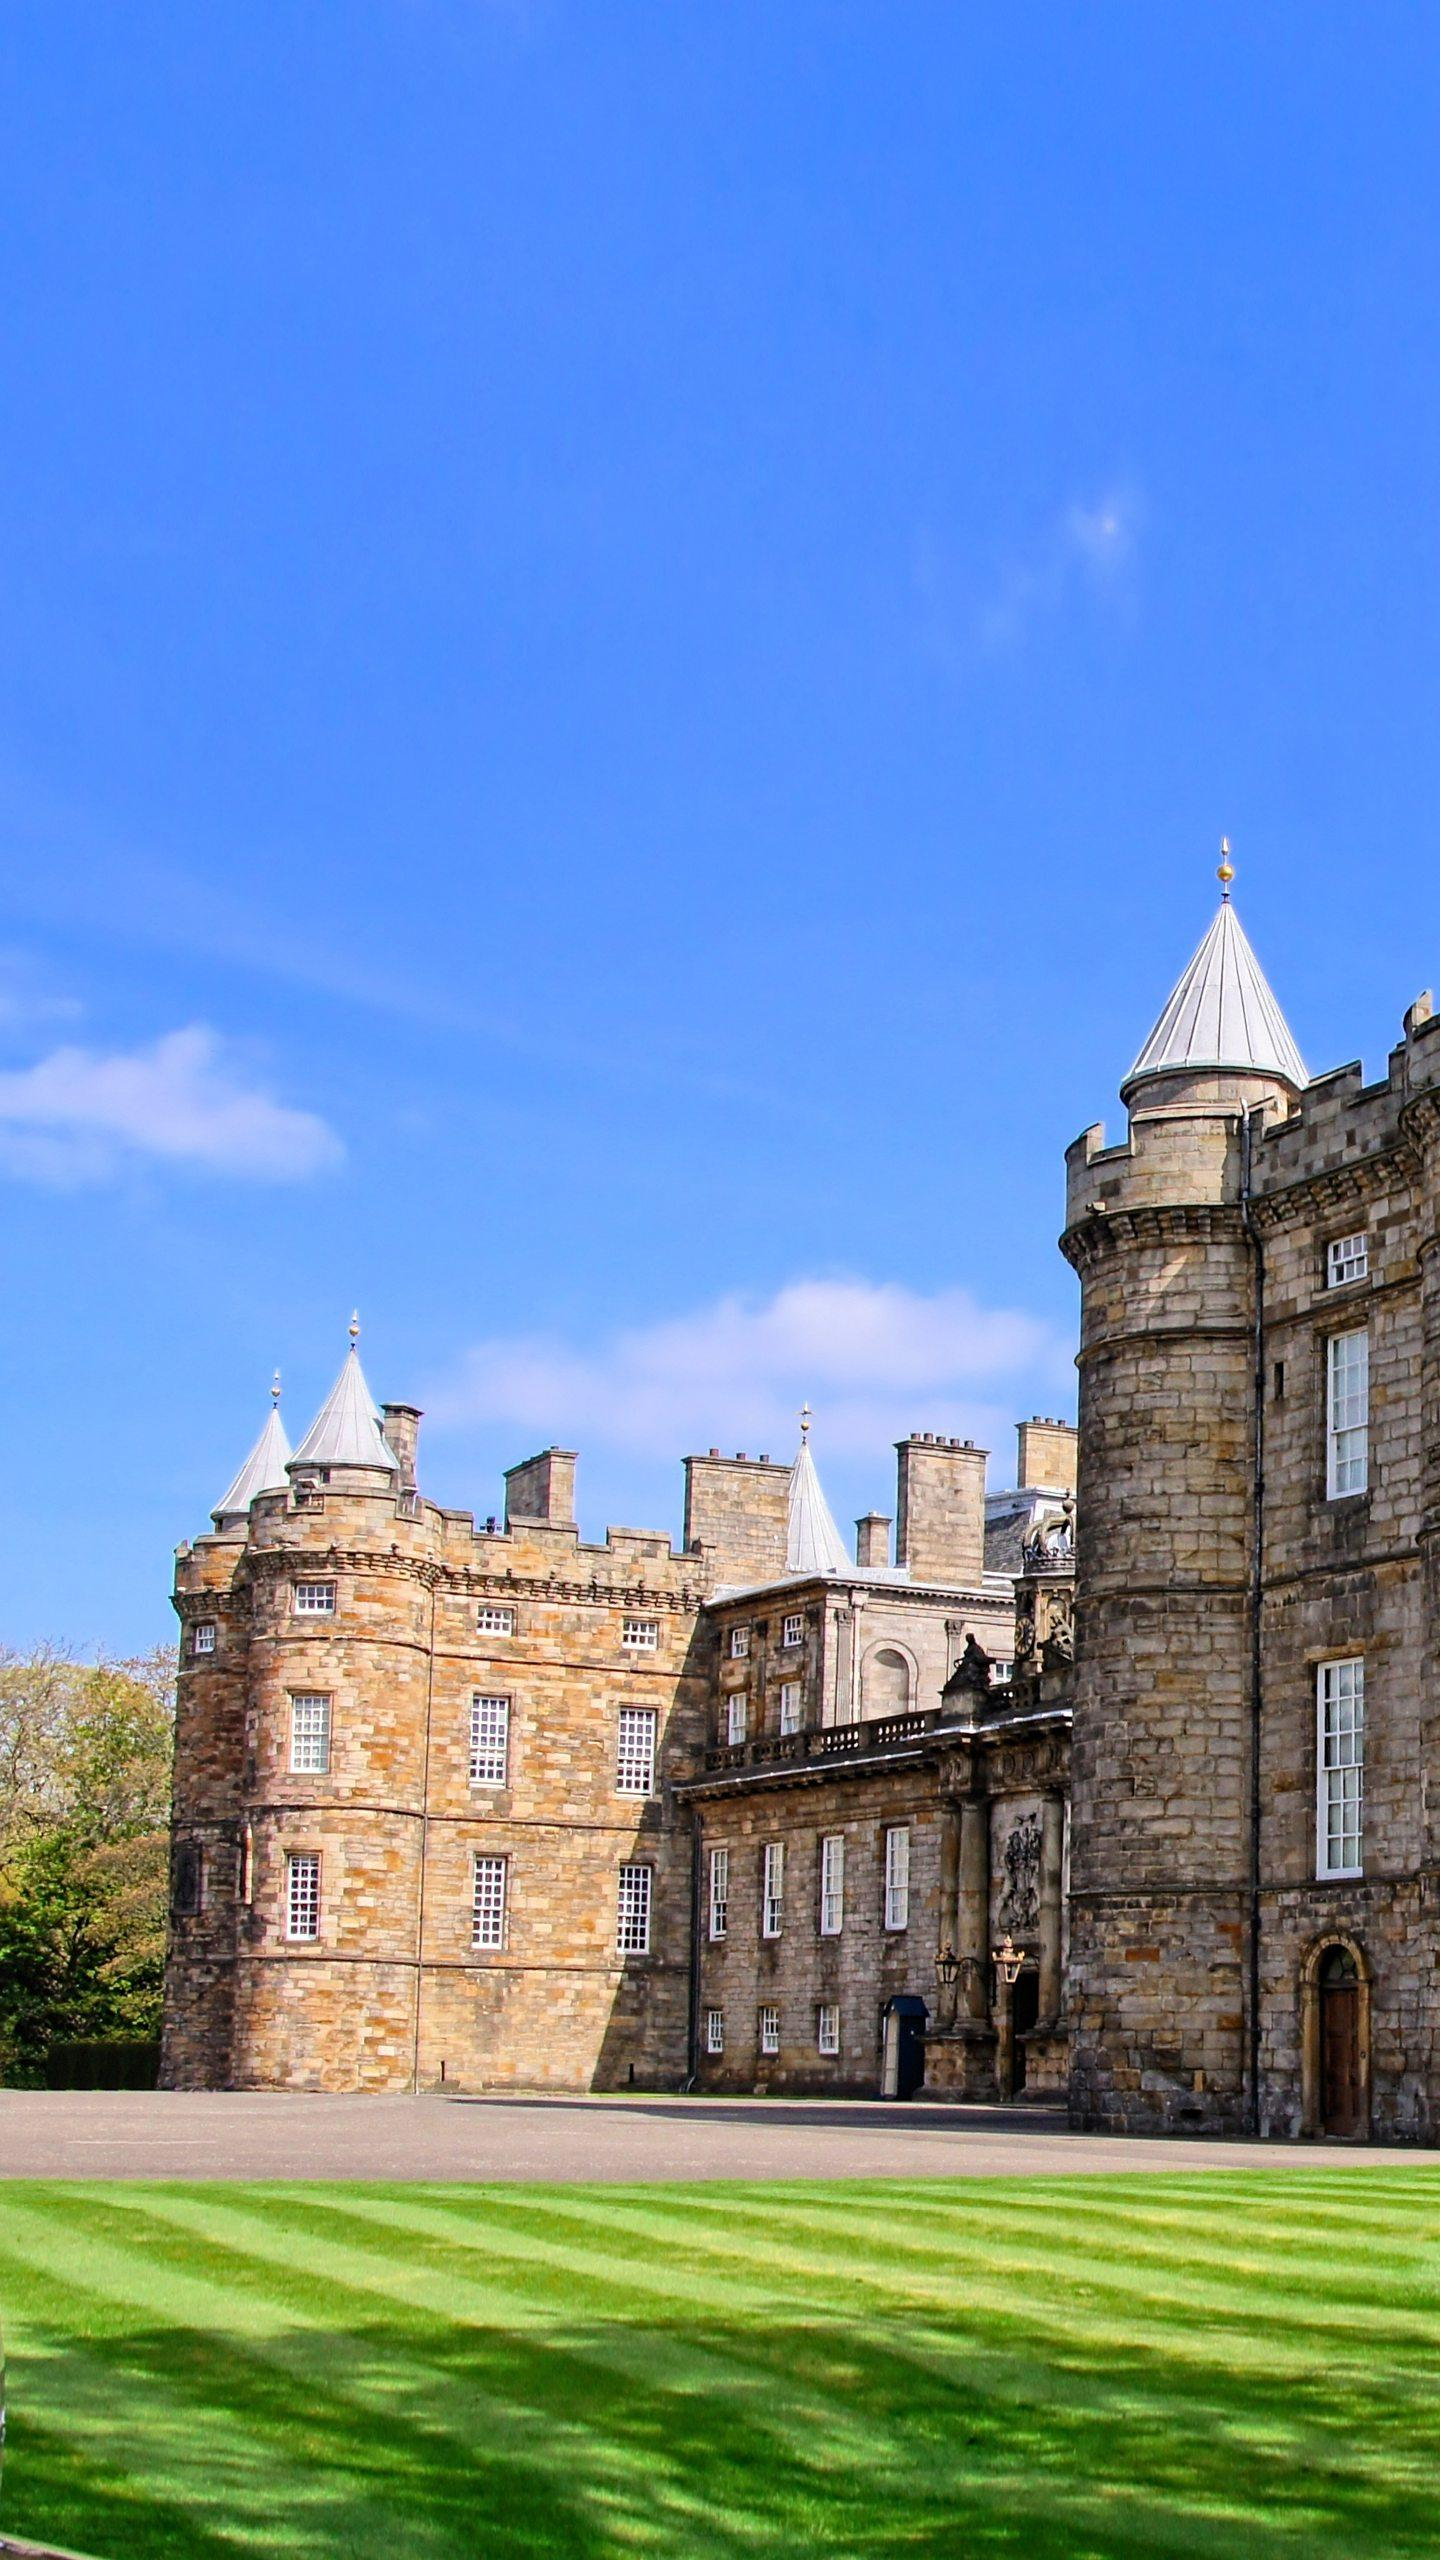 Edinburgh - Holyrood Palace. Originally a monastery, it later became the palace of the Scottish royal family and is still the residence of the Queen of England to Scotland.